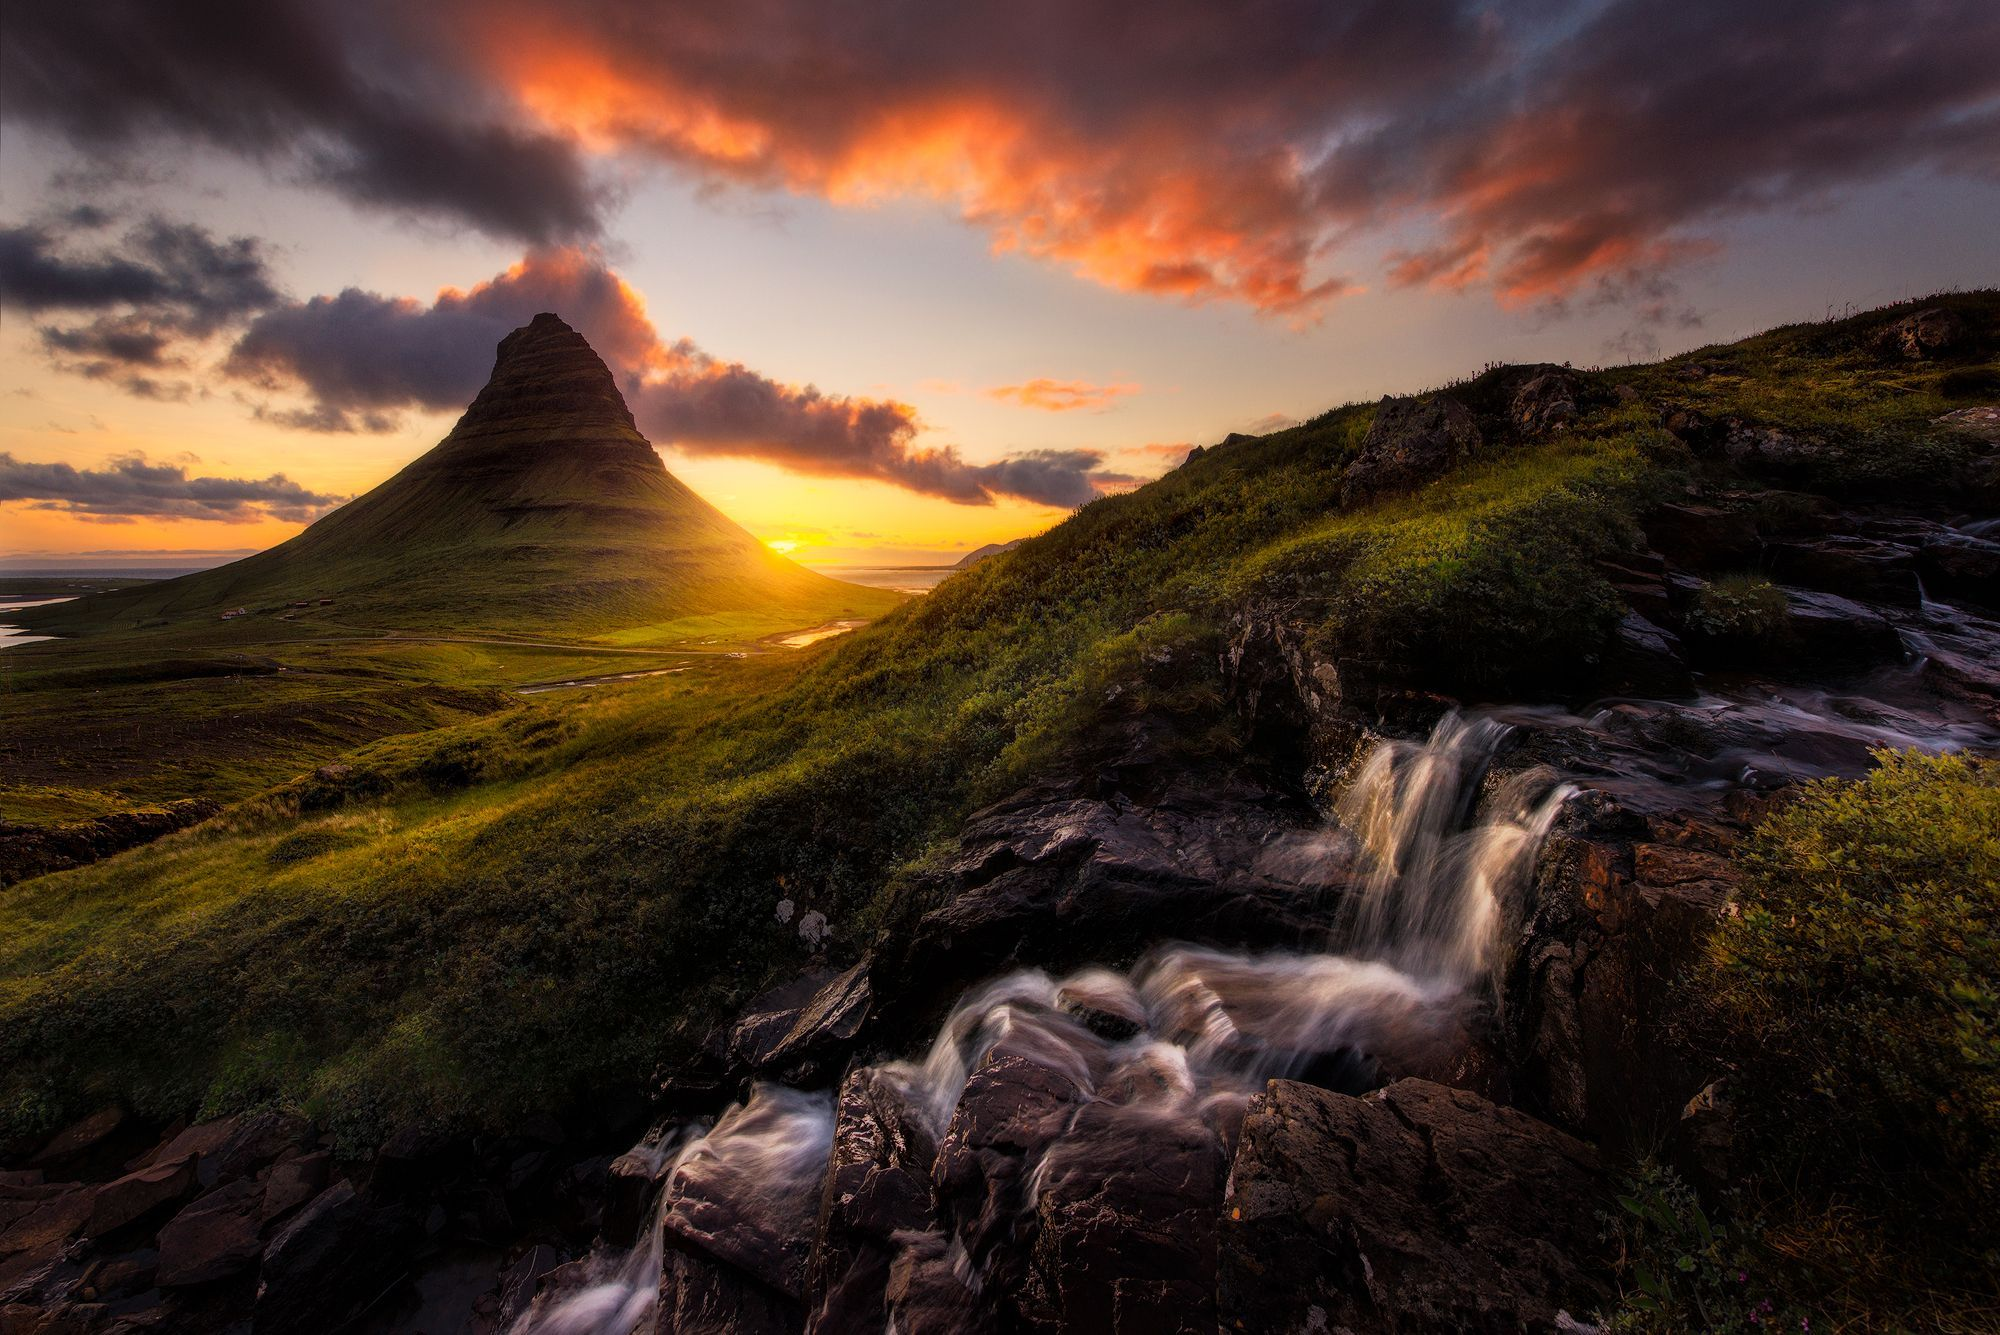 The sun rises behind Kirkjufell, arguably Iceland's most famous mountain. The mountain stands 1,500 feet high on its own small peninsula.